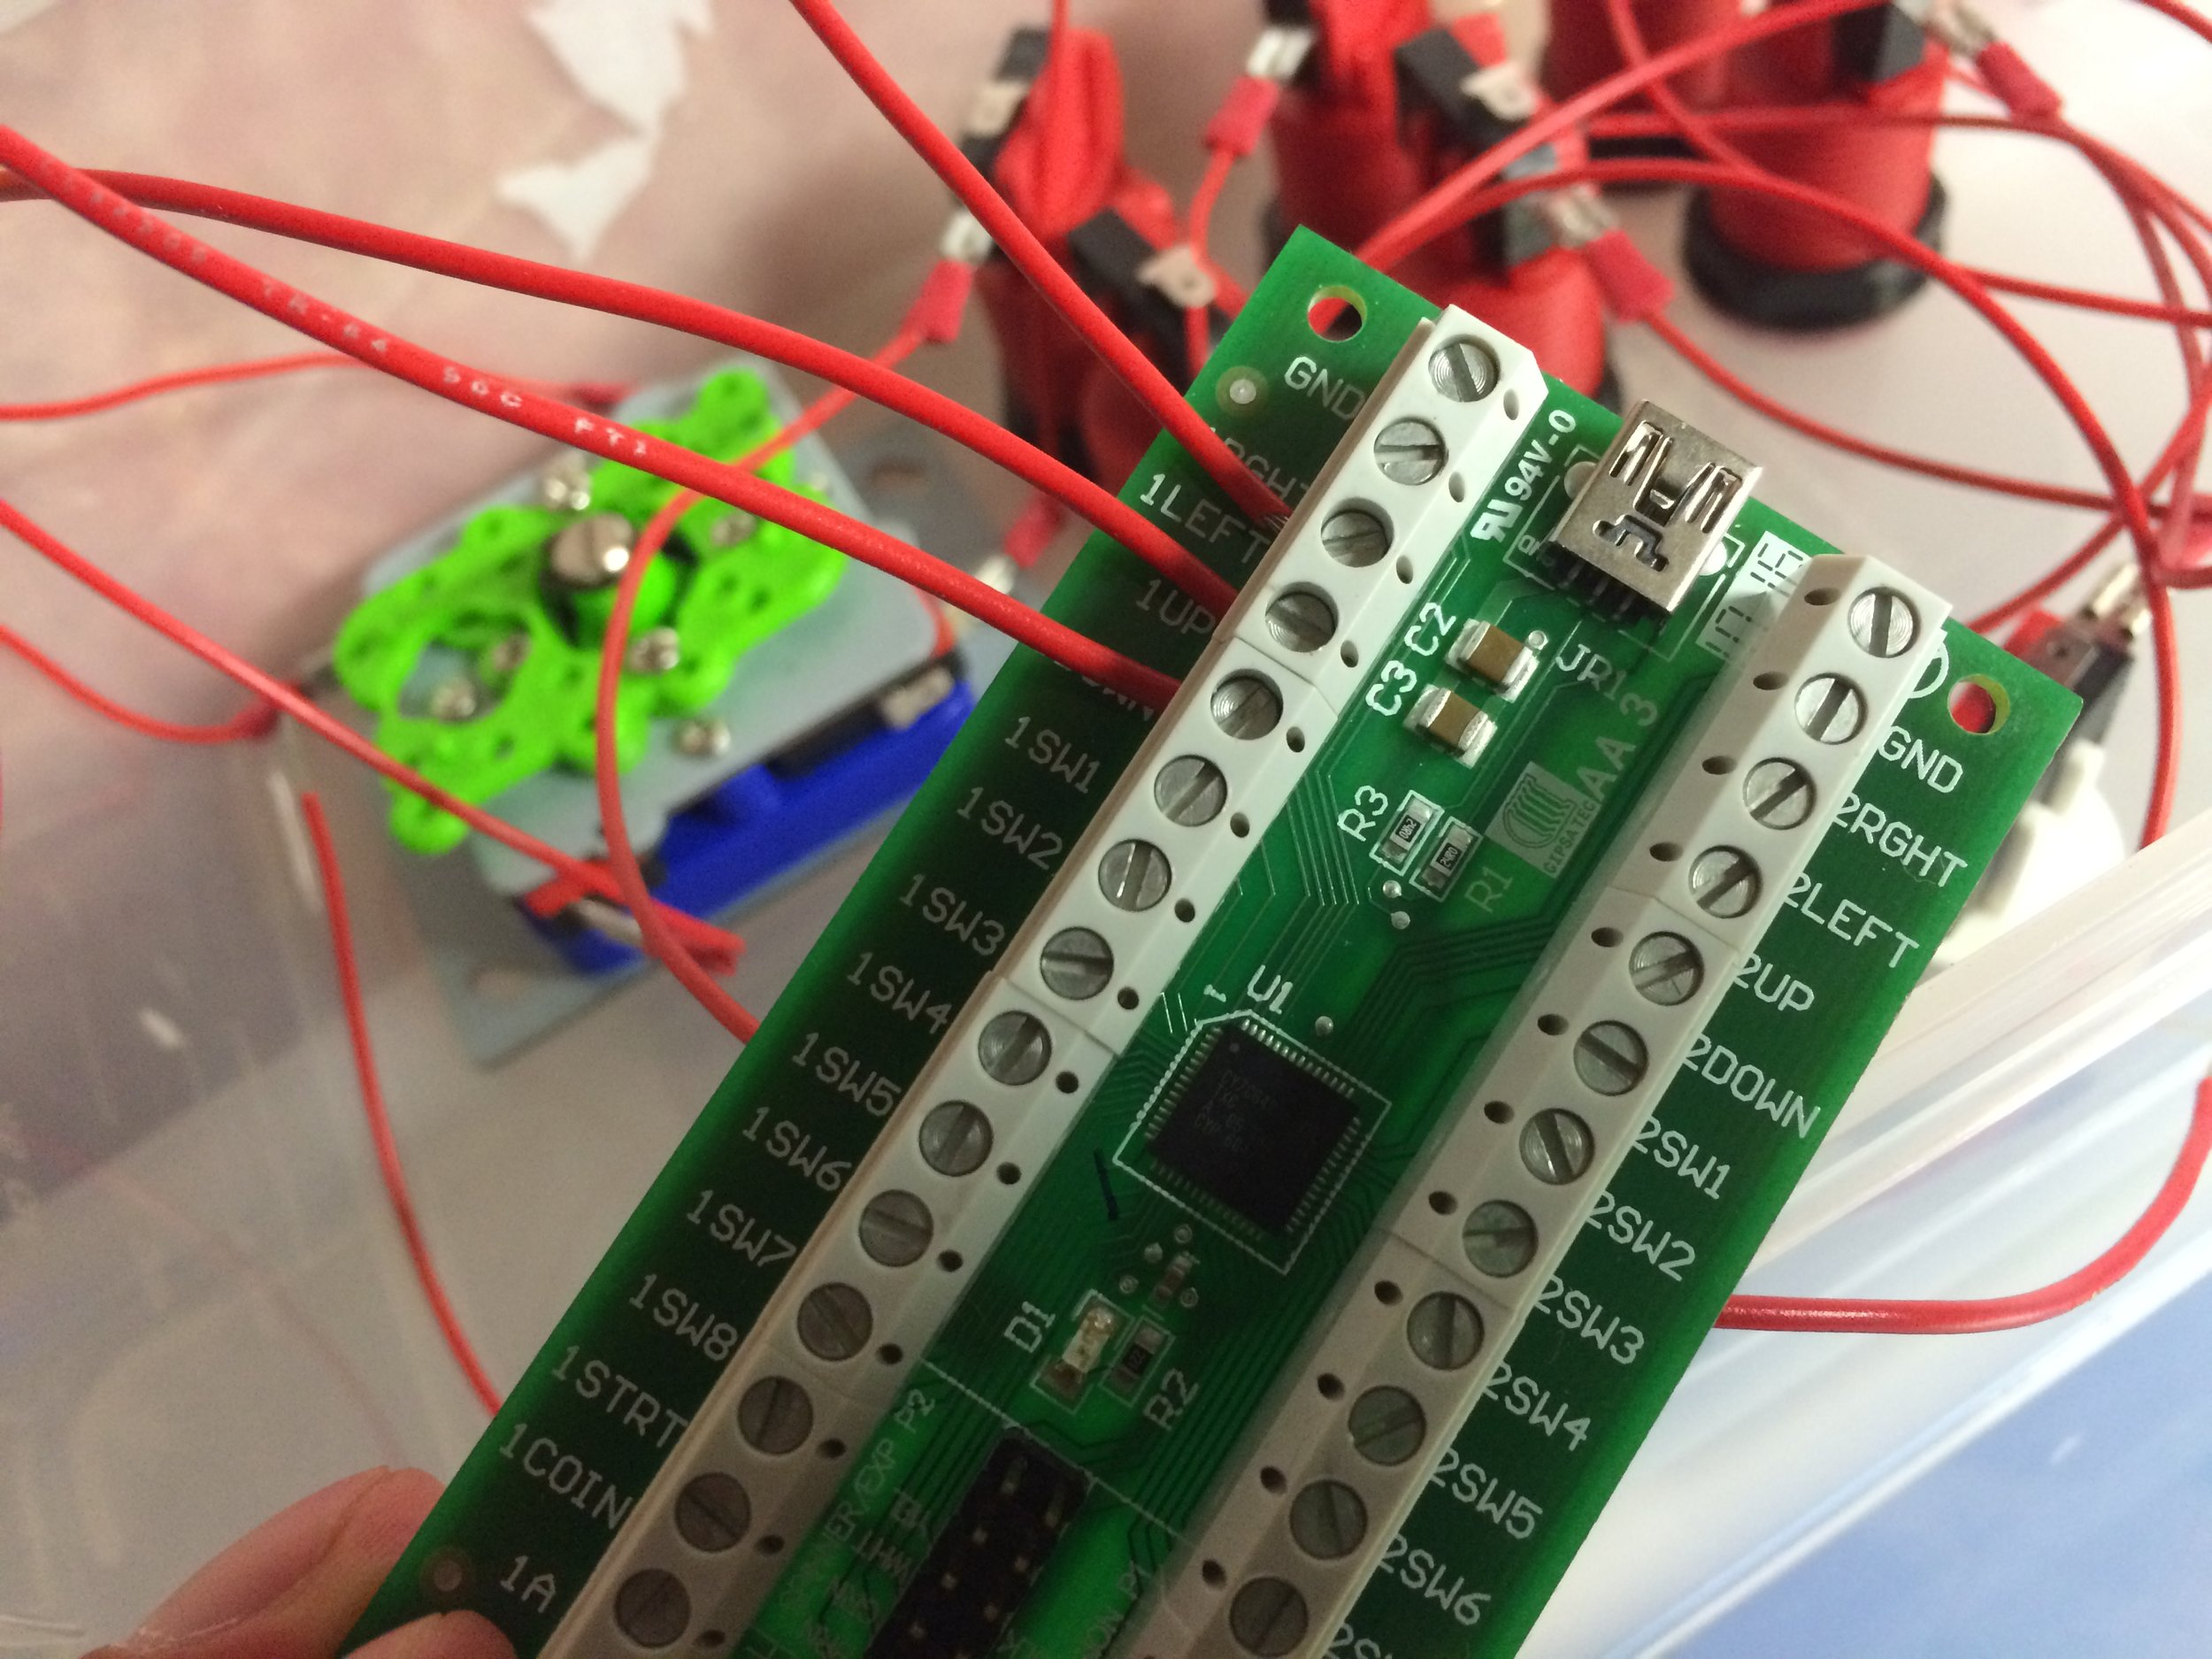 Wiring the buttons and joystick to the I-PAC encoder